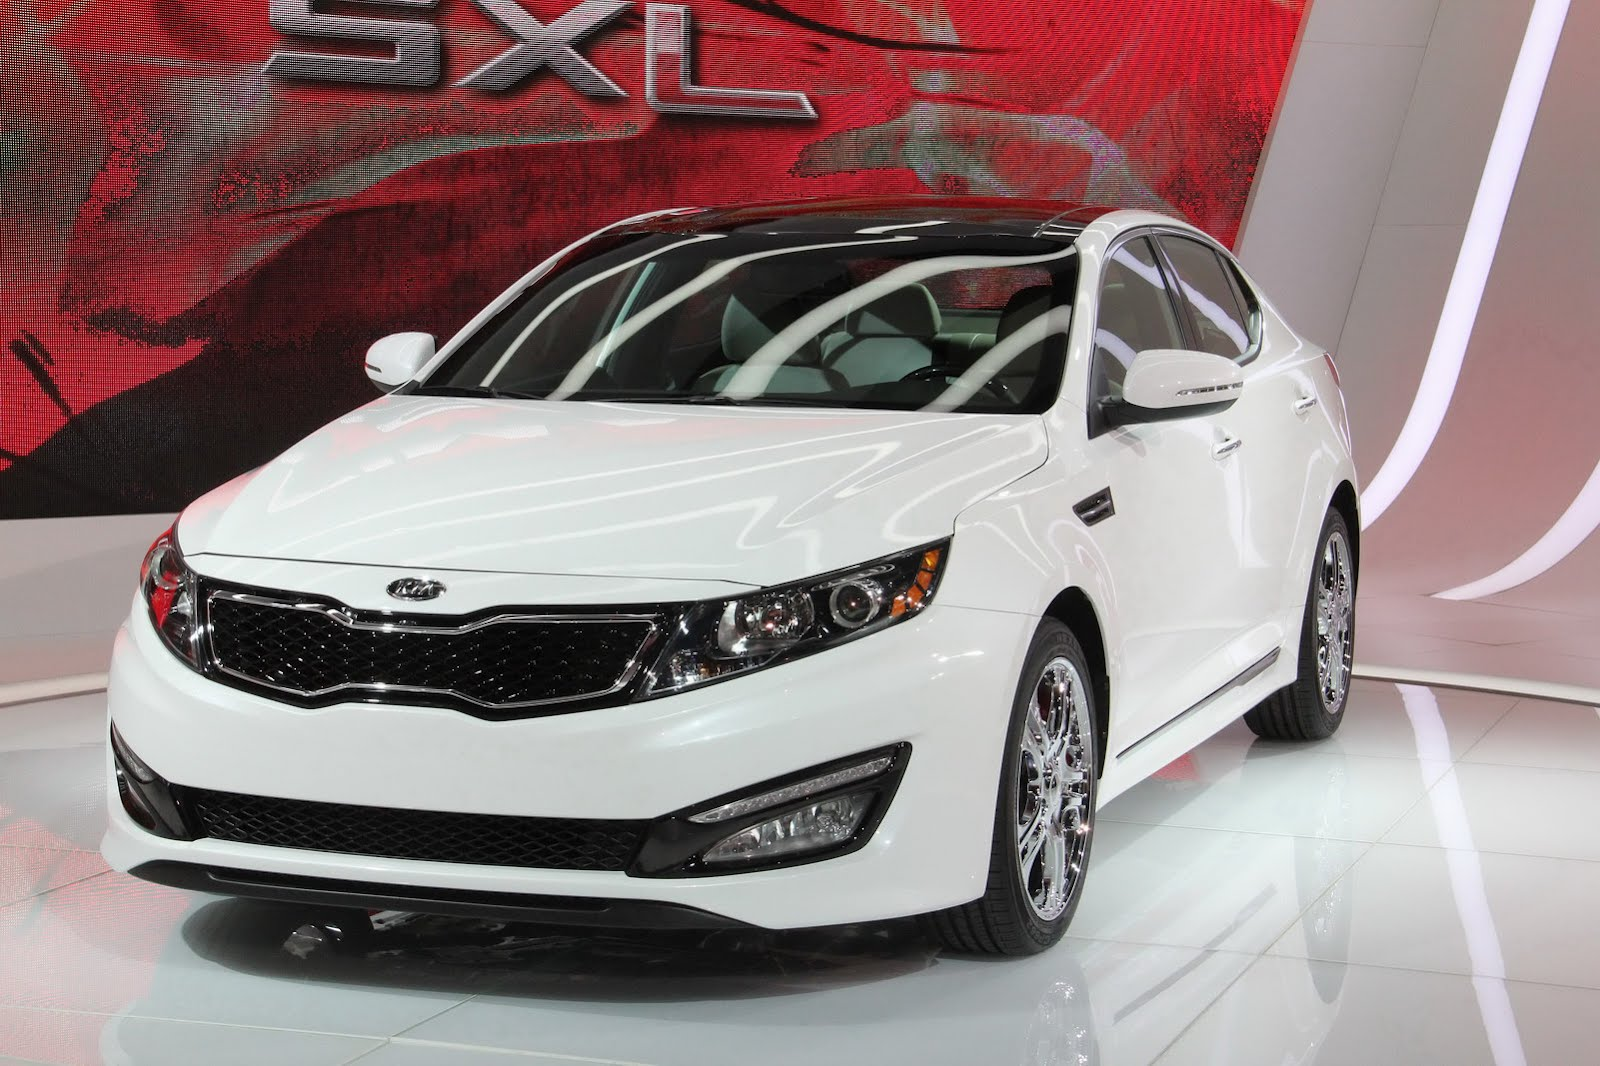 Kia Optima SX Limited Edition adds Some Bling Photo Gallery Desktop Backgrounds